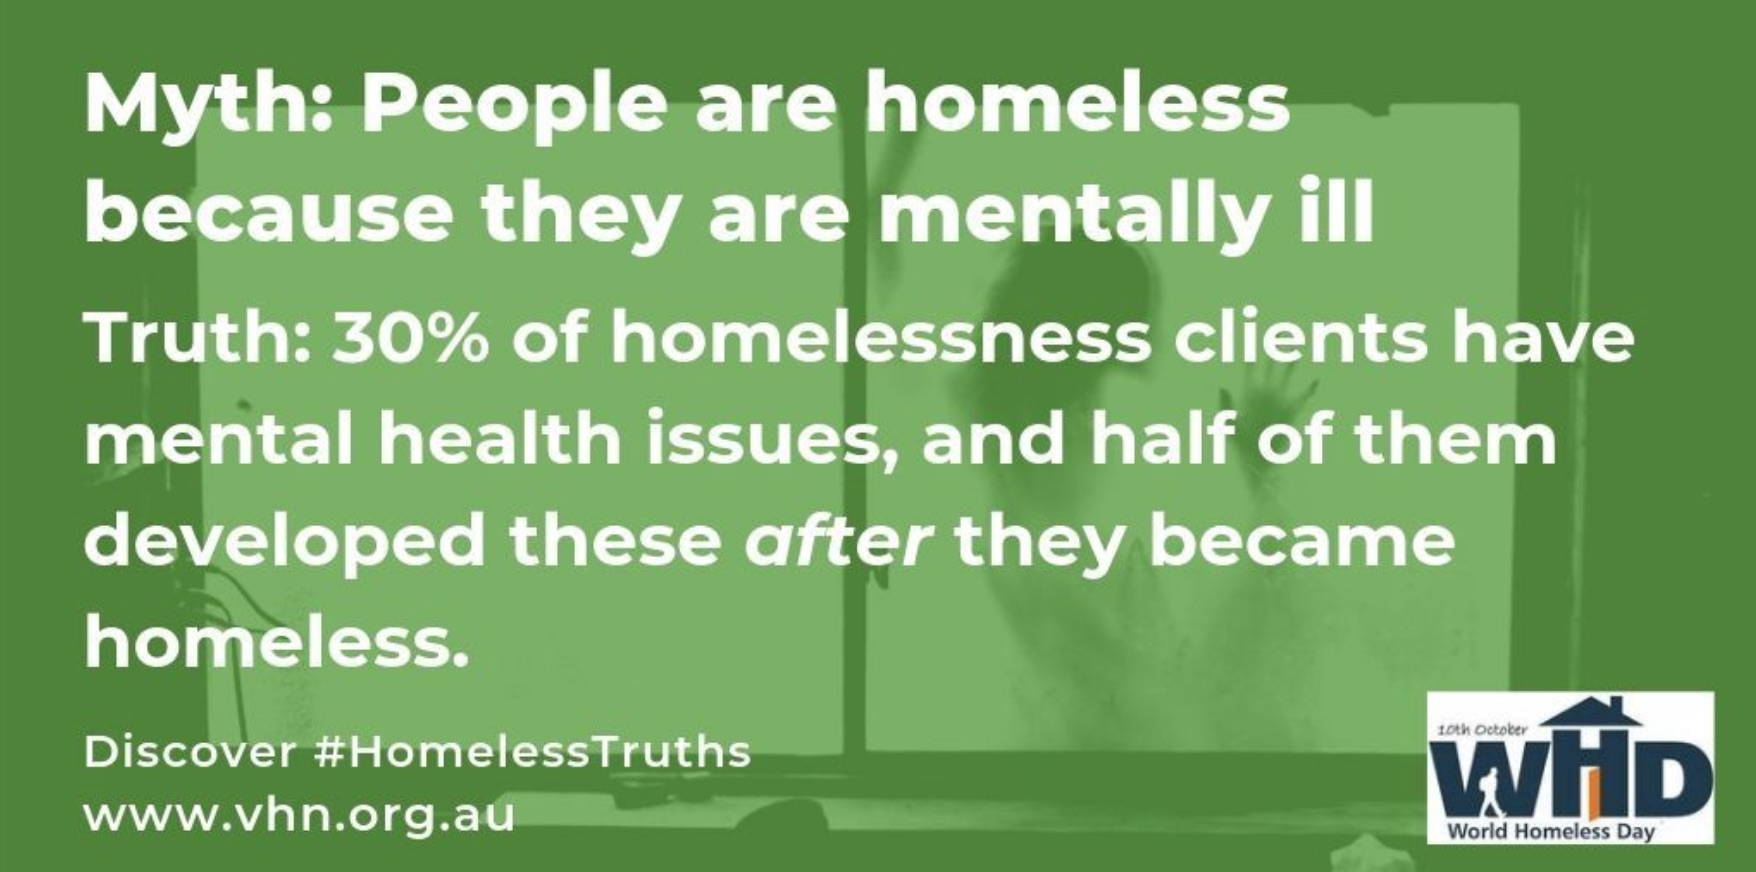 From the #HomelessTruths campaign